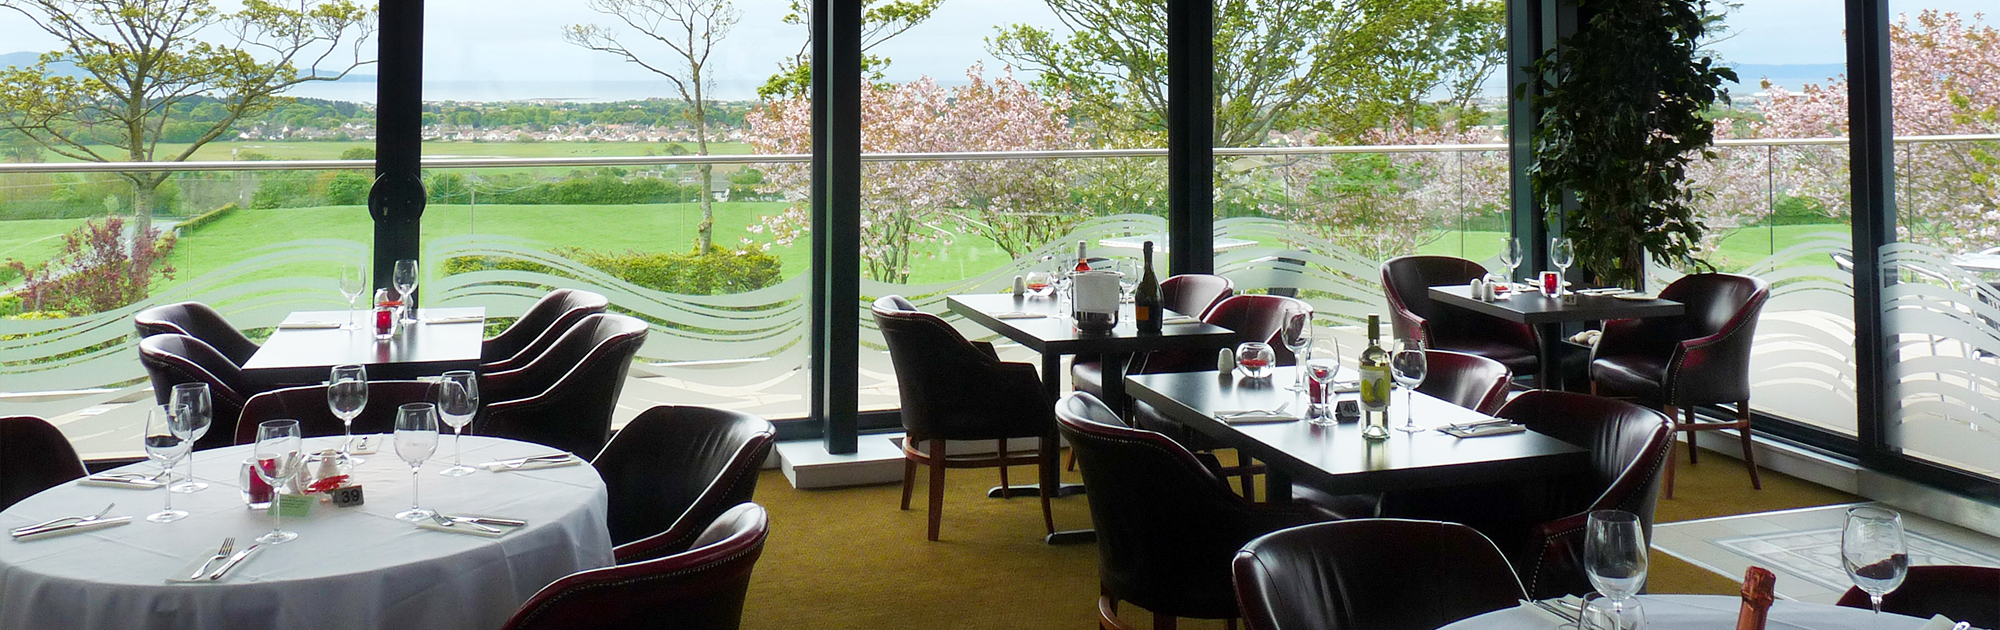 Al fresco dining: Our impressive patio area offers stunning panoramic views of Ayrshire